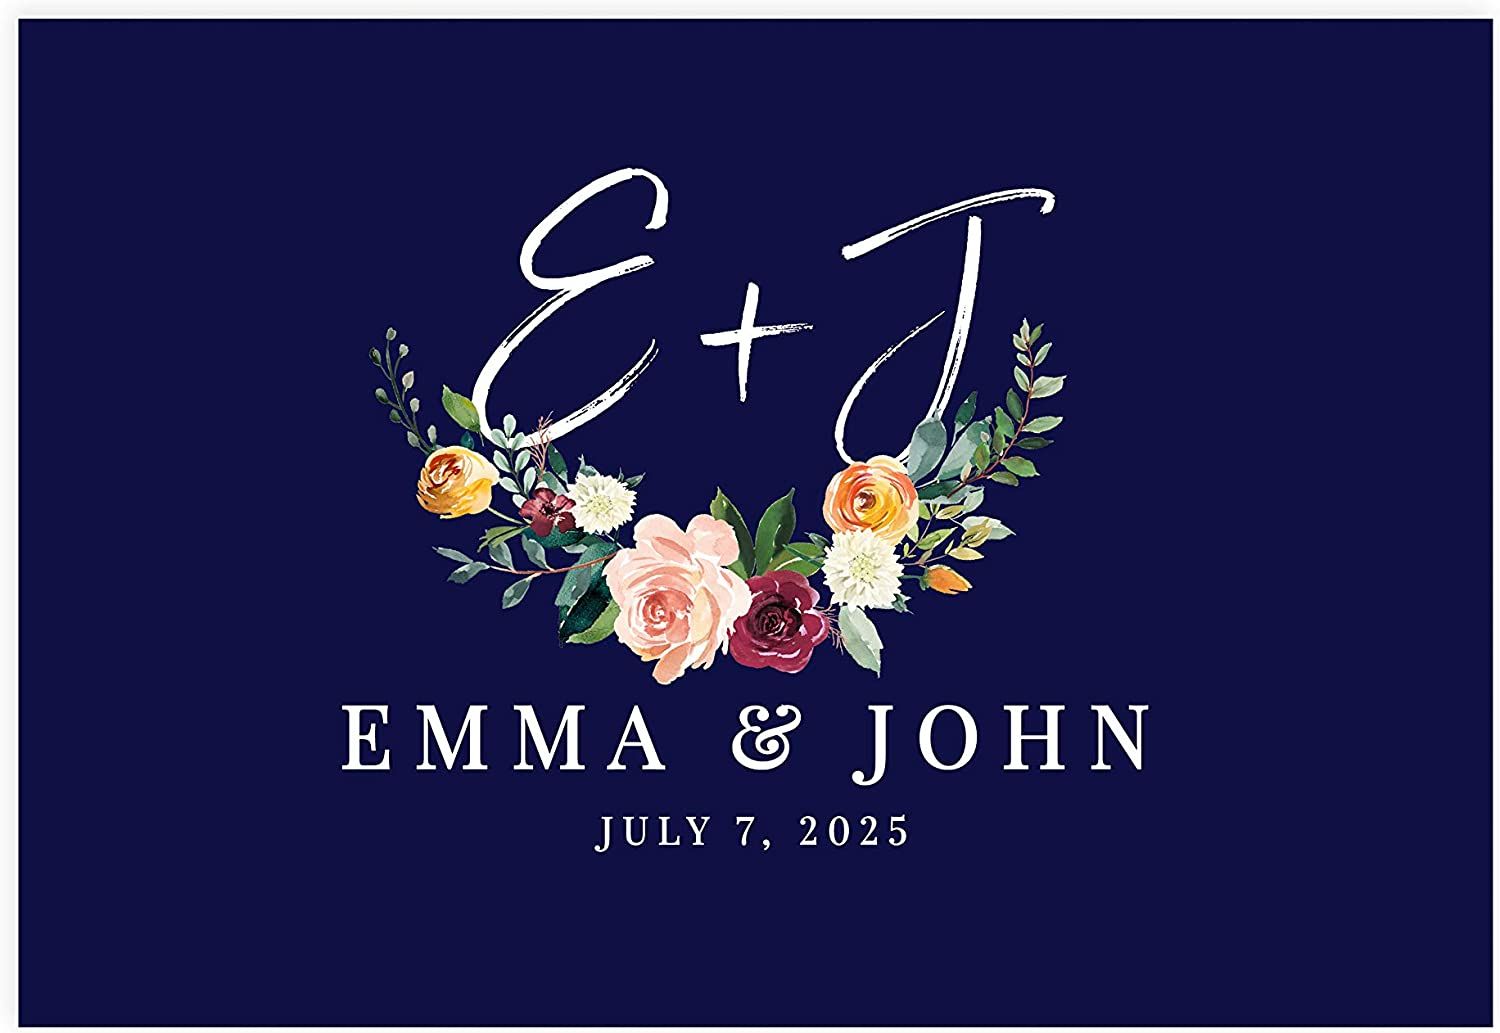 Andaz Press Custom Personalized Disposable Paper Placemats, 12 x 18 Inch, Set of 25, Navy Floral Custom, Tableware, Dining, Tabletop, Table Setting for Wedding, Bridal Shower